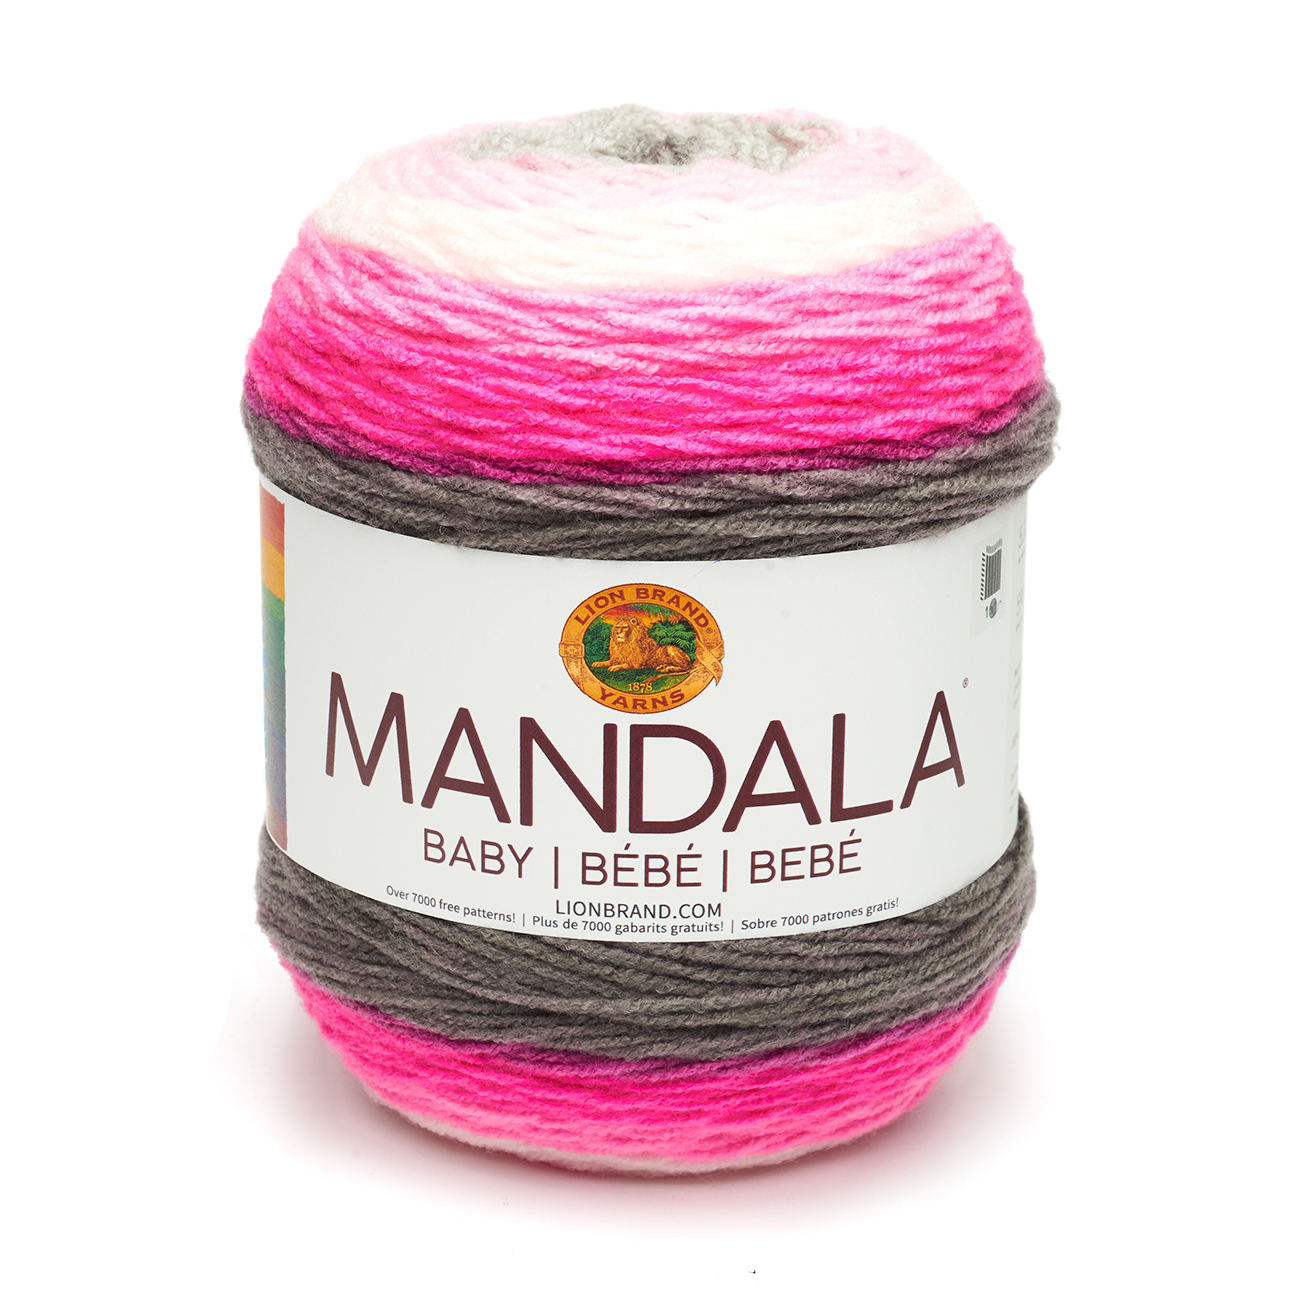 Lion Brand Mandala Baby Yarn 590 Yd Walmart Inventory Checker